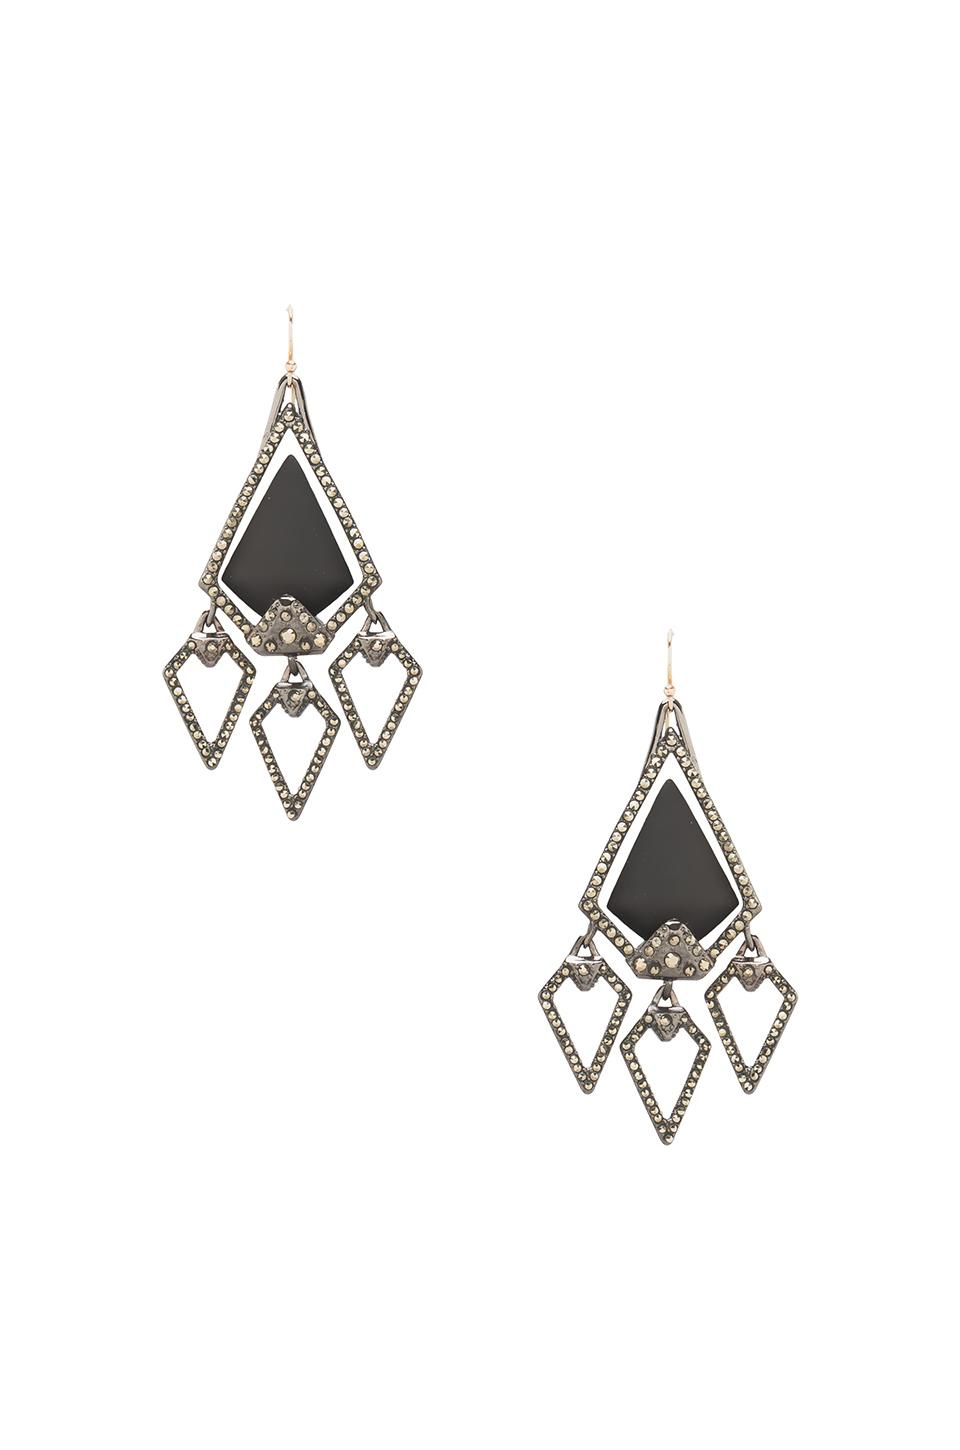 Alexis Bittar Santa Fe Arrow Chandelier Earring in Black